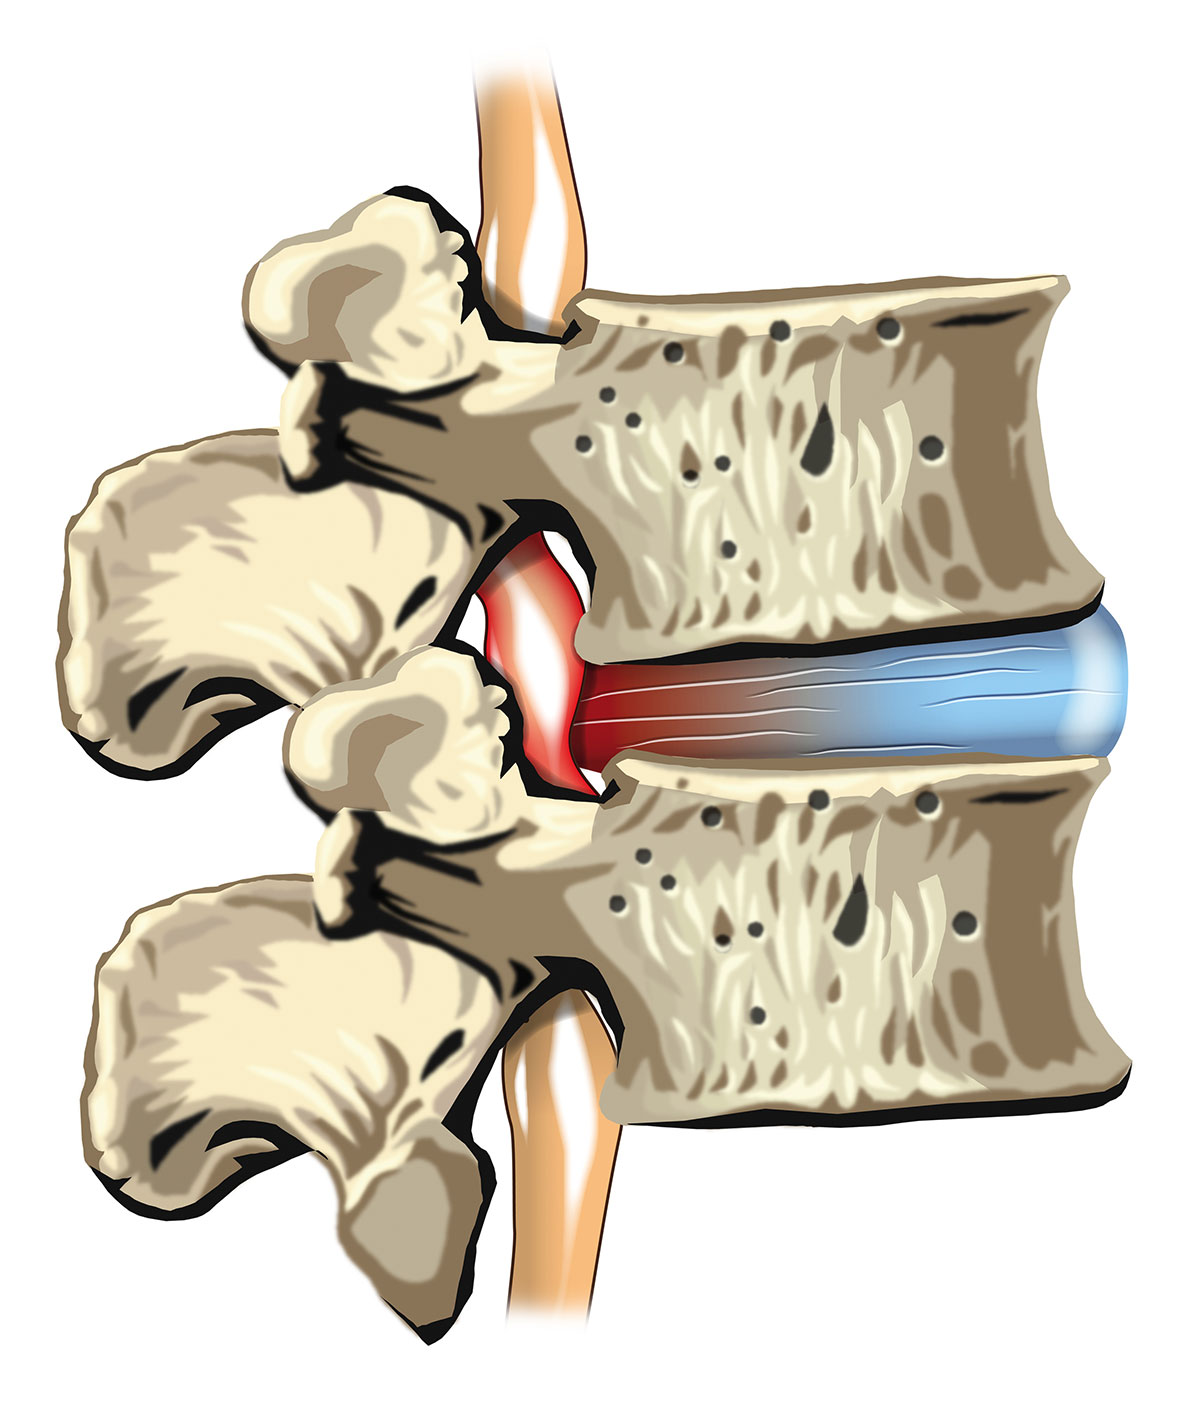 disc hernia | slipped disc | sciatica | bulging disc